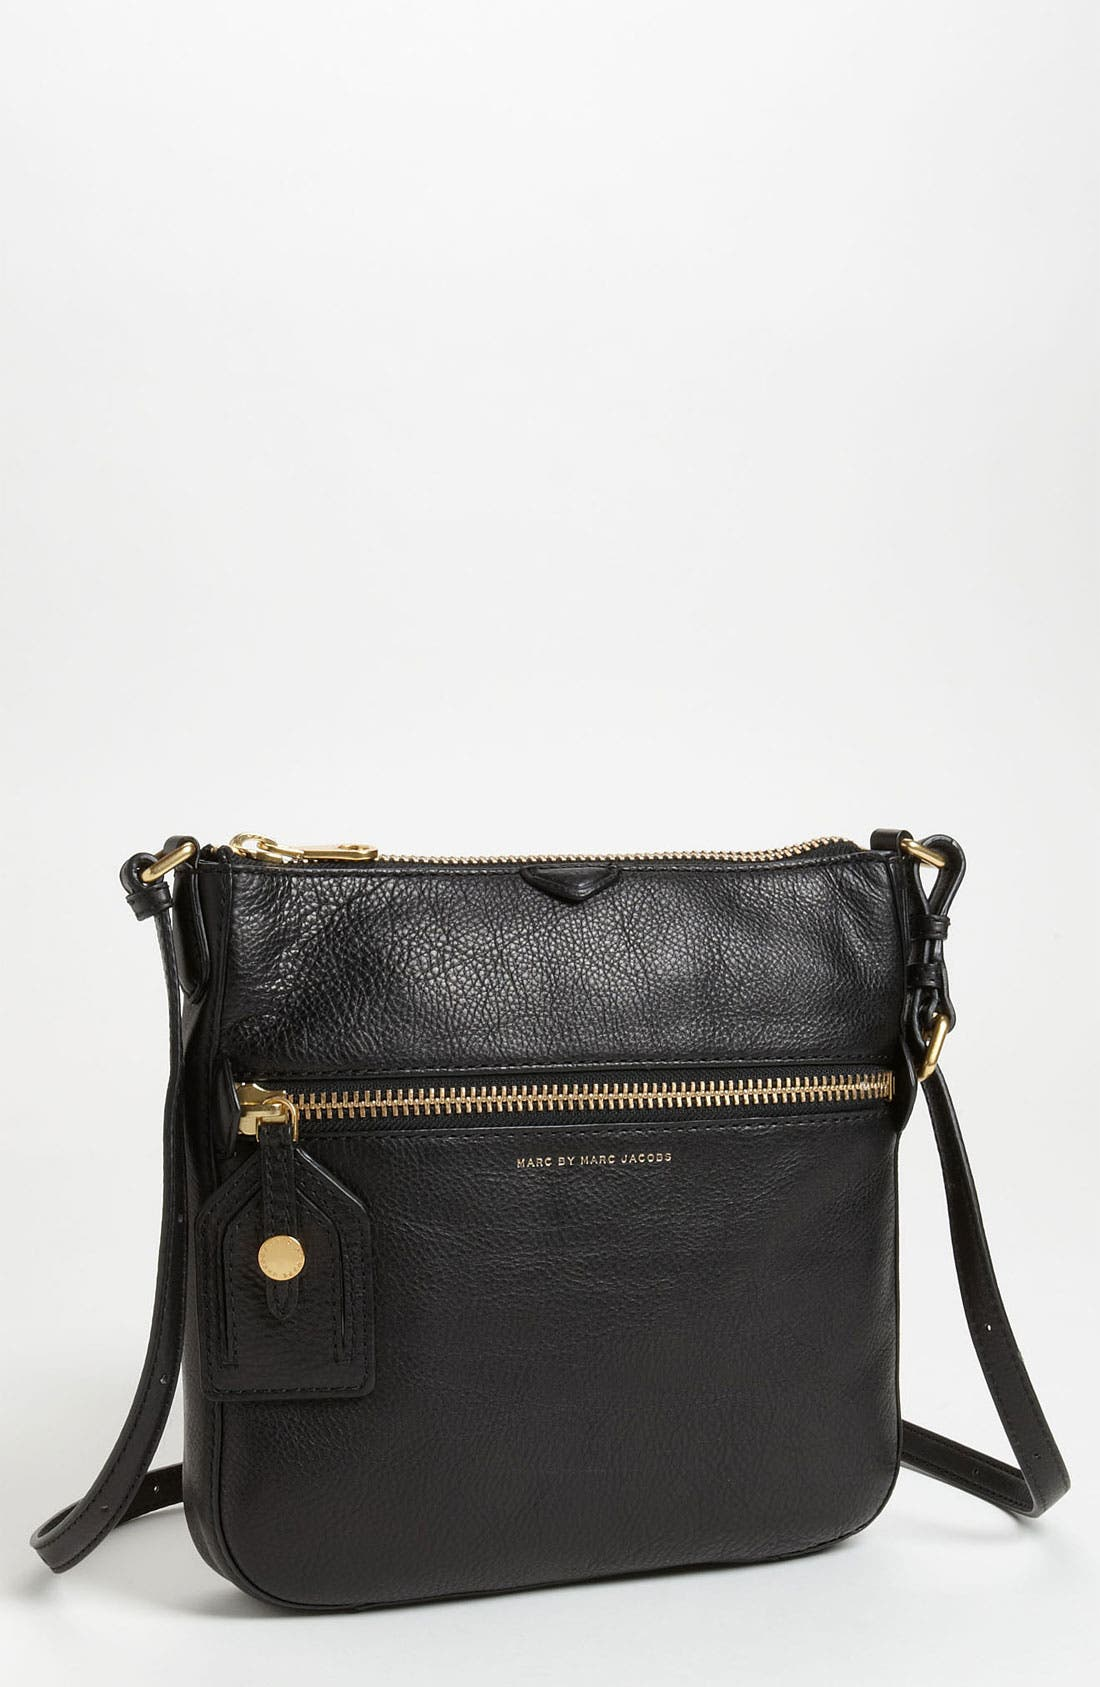 Alternate Image 1 Selected - MARC BY MARC JACOBS 'Globetrotter - Kit Calley' Leather Crossbody Bag